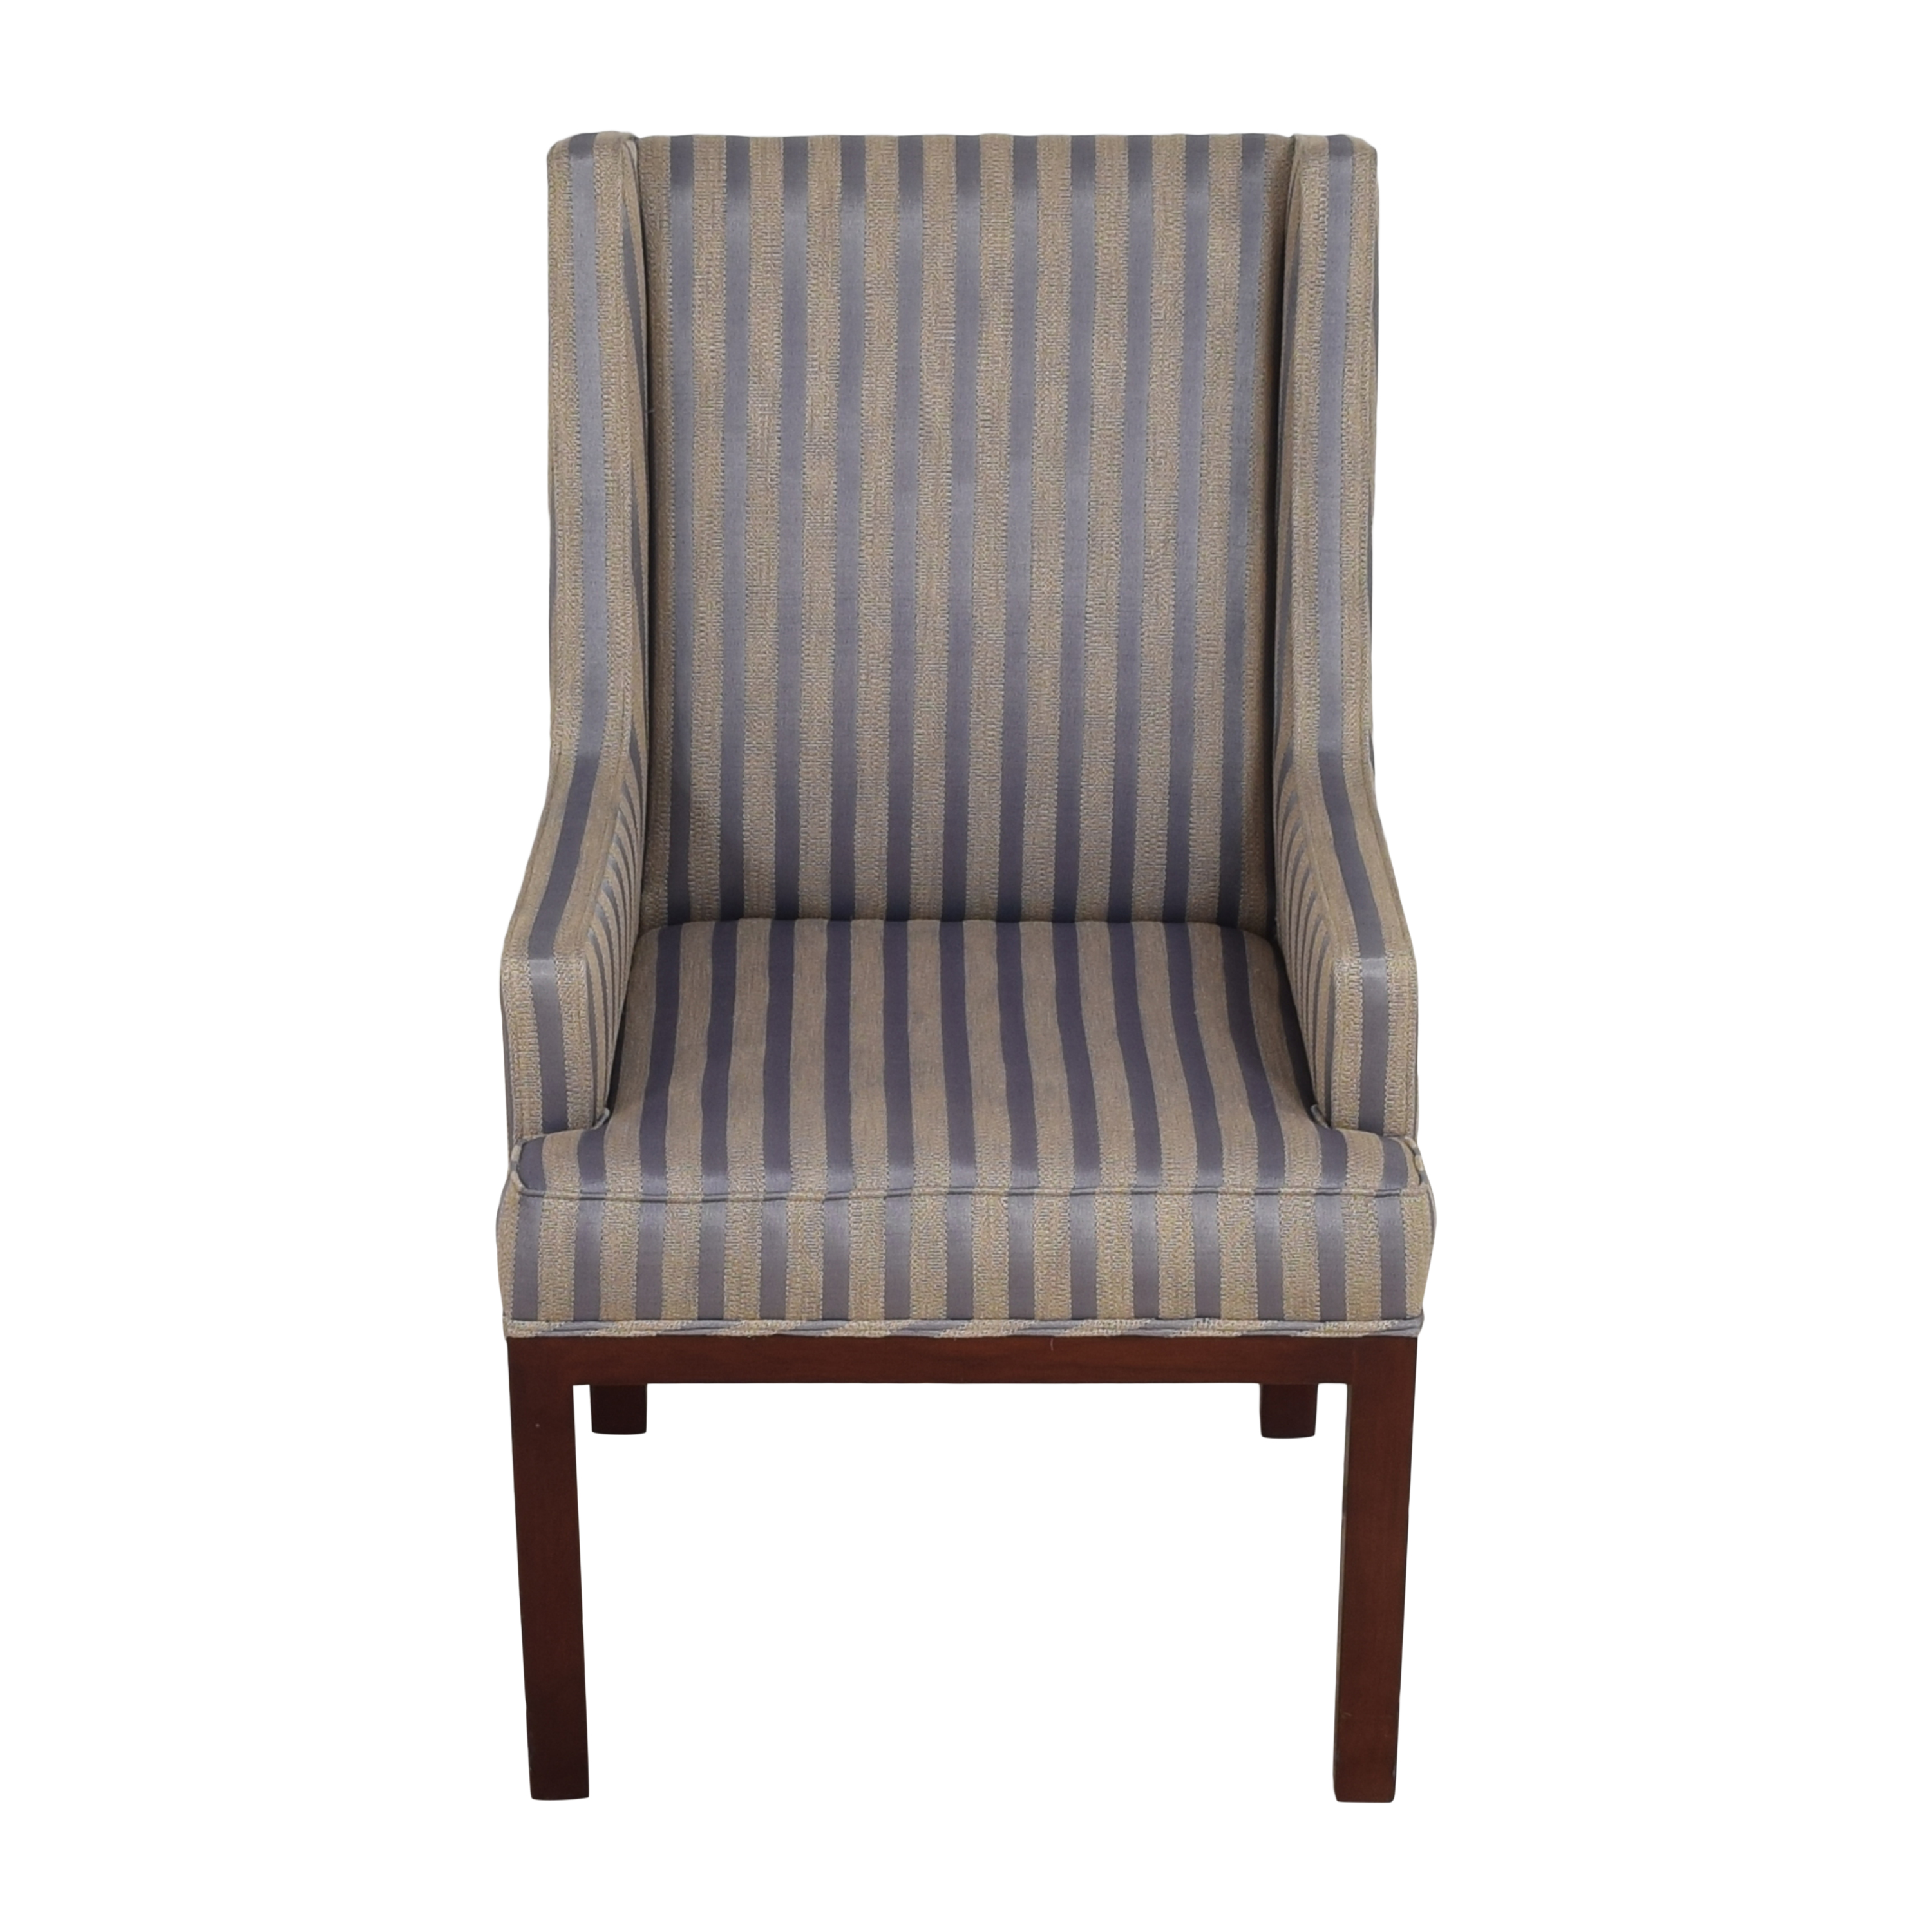 Striped Arm Chair / Accent Chairs